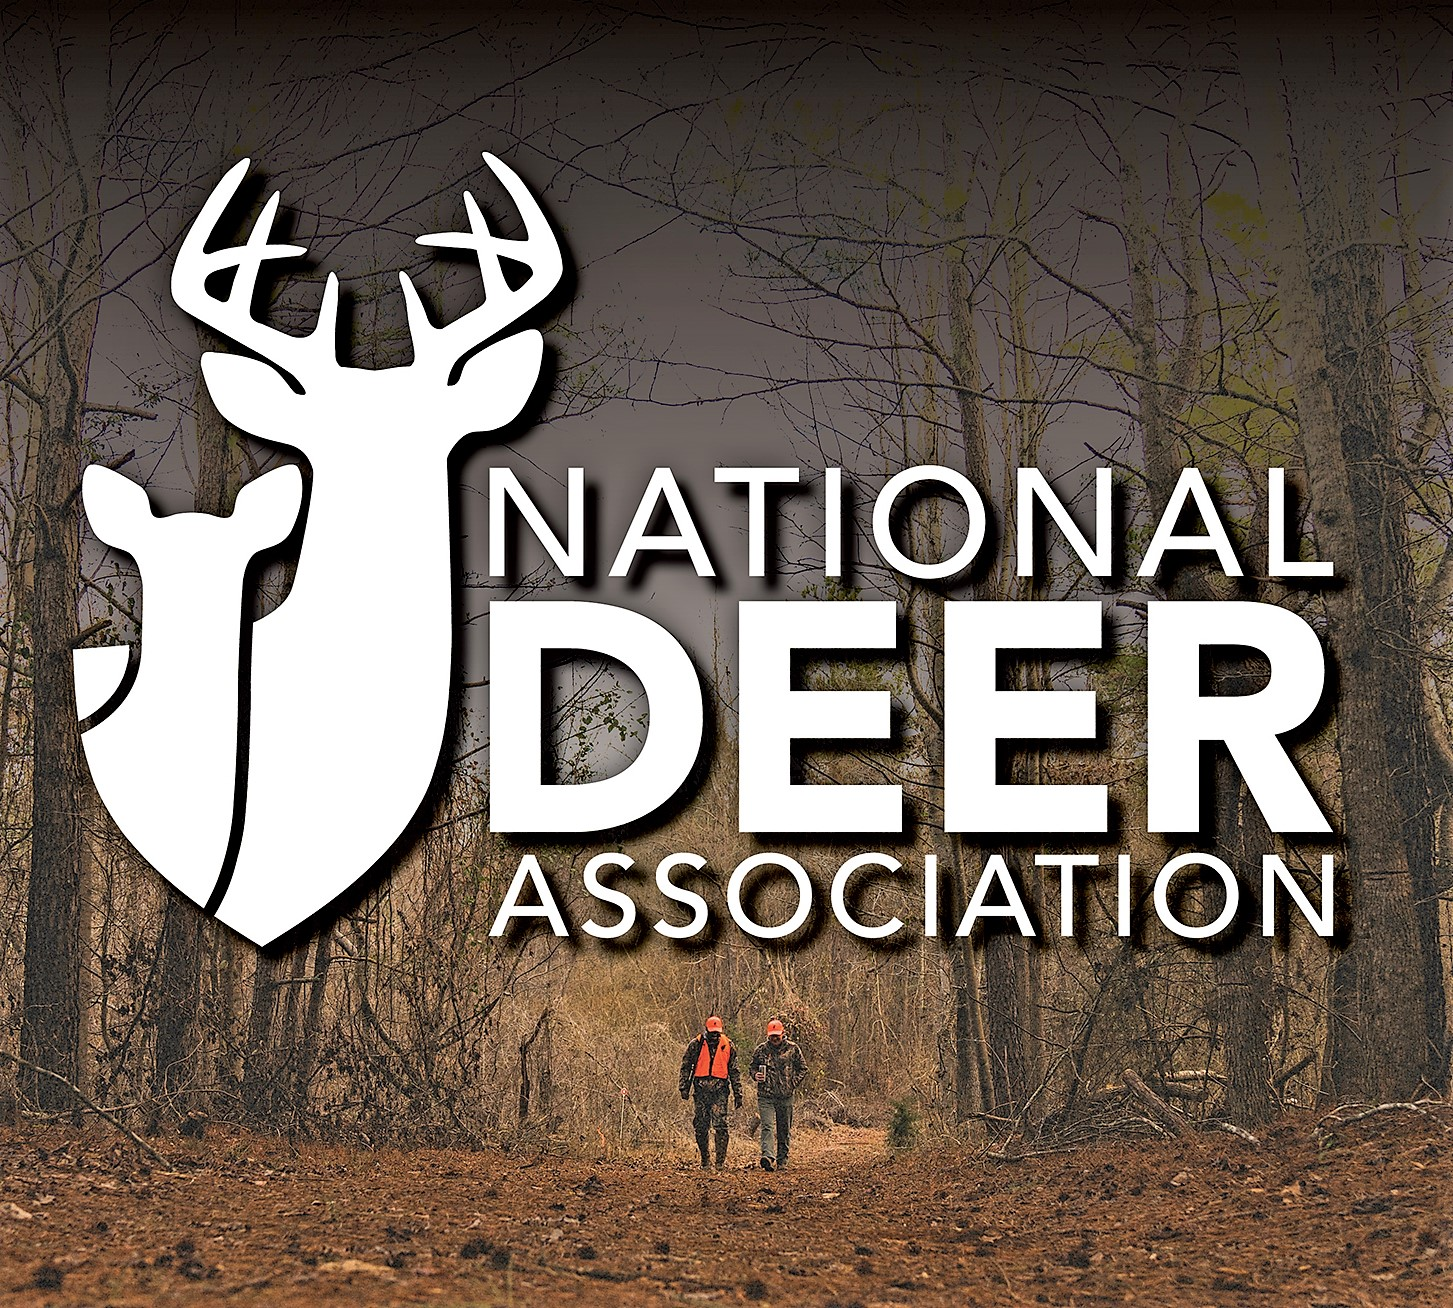 National Deer Association (NDA) has Solid Plan to Empower Deer Hunters